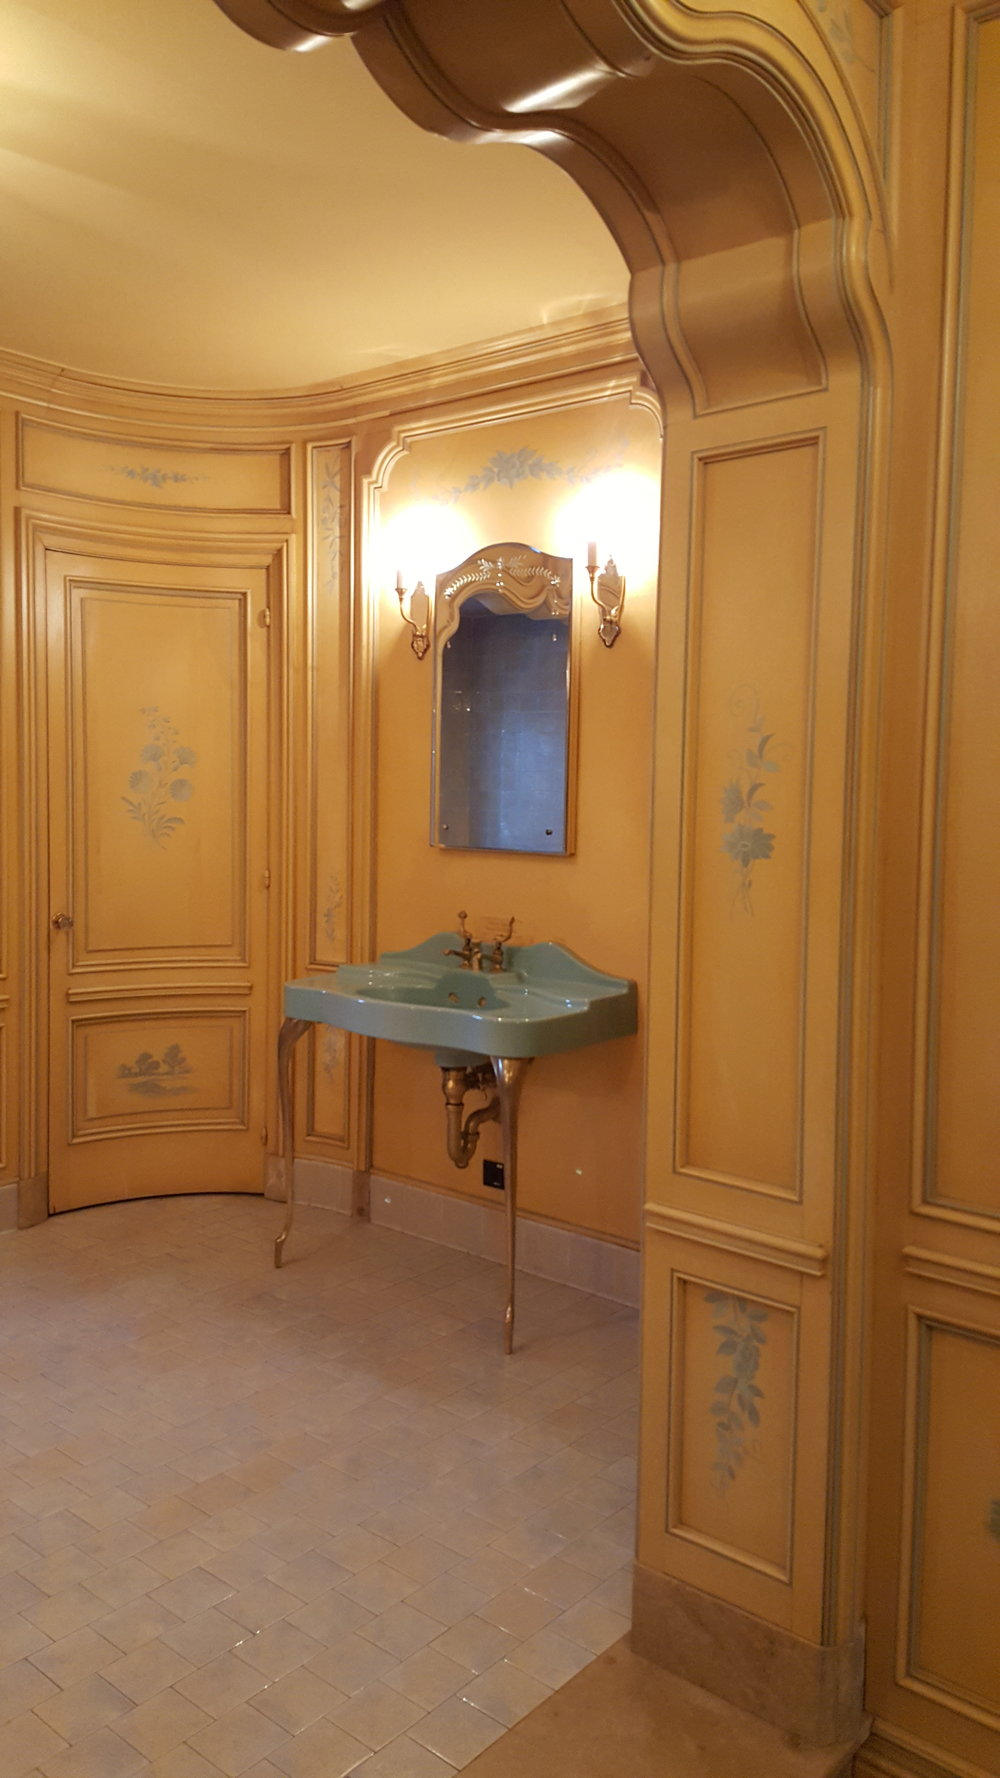 One of the haunted bathrooms at Highlands Ranch Mansion. The stenciling and detail is astounding. Photo: Michelle Tebow